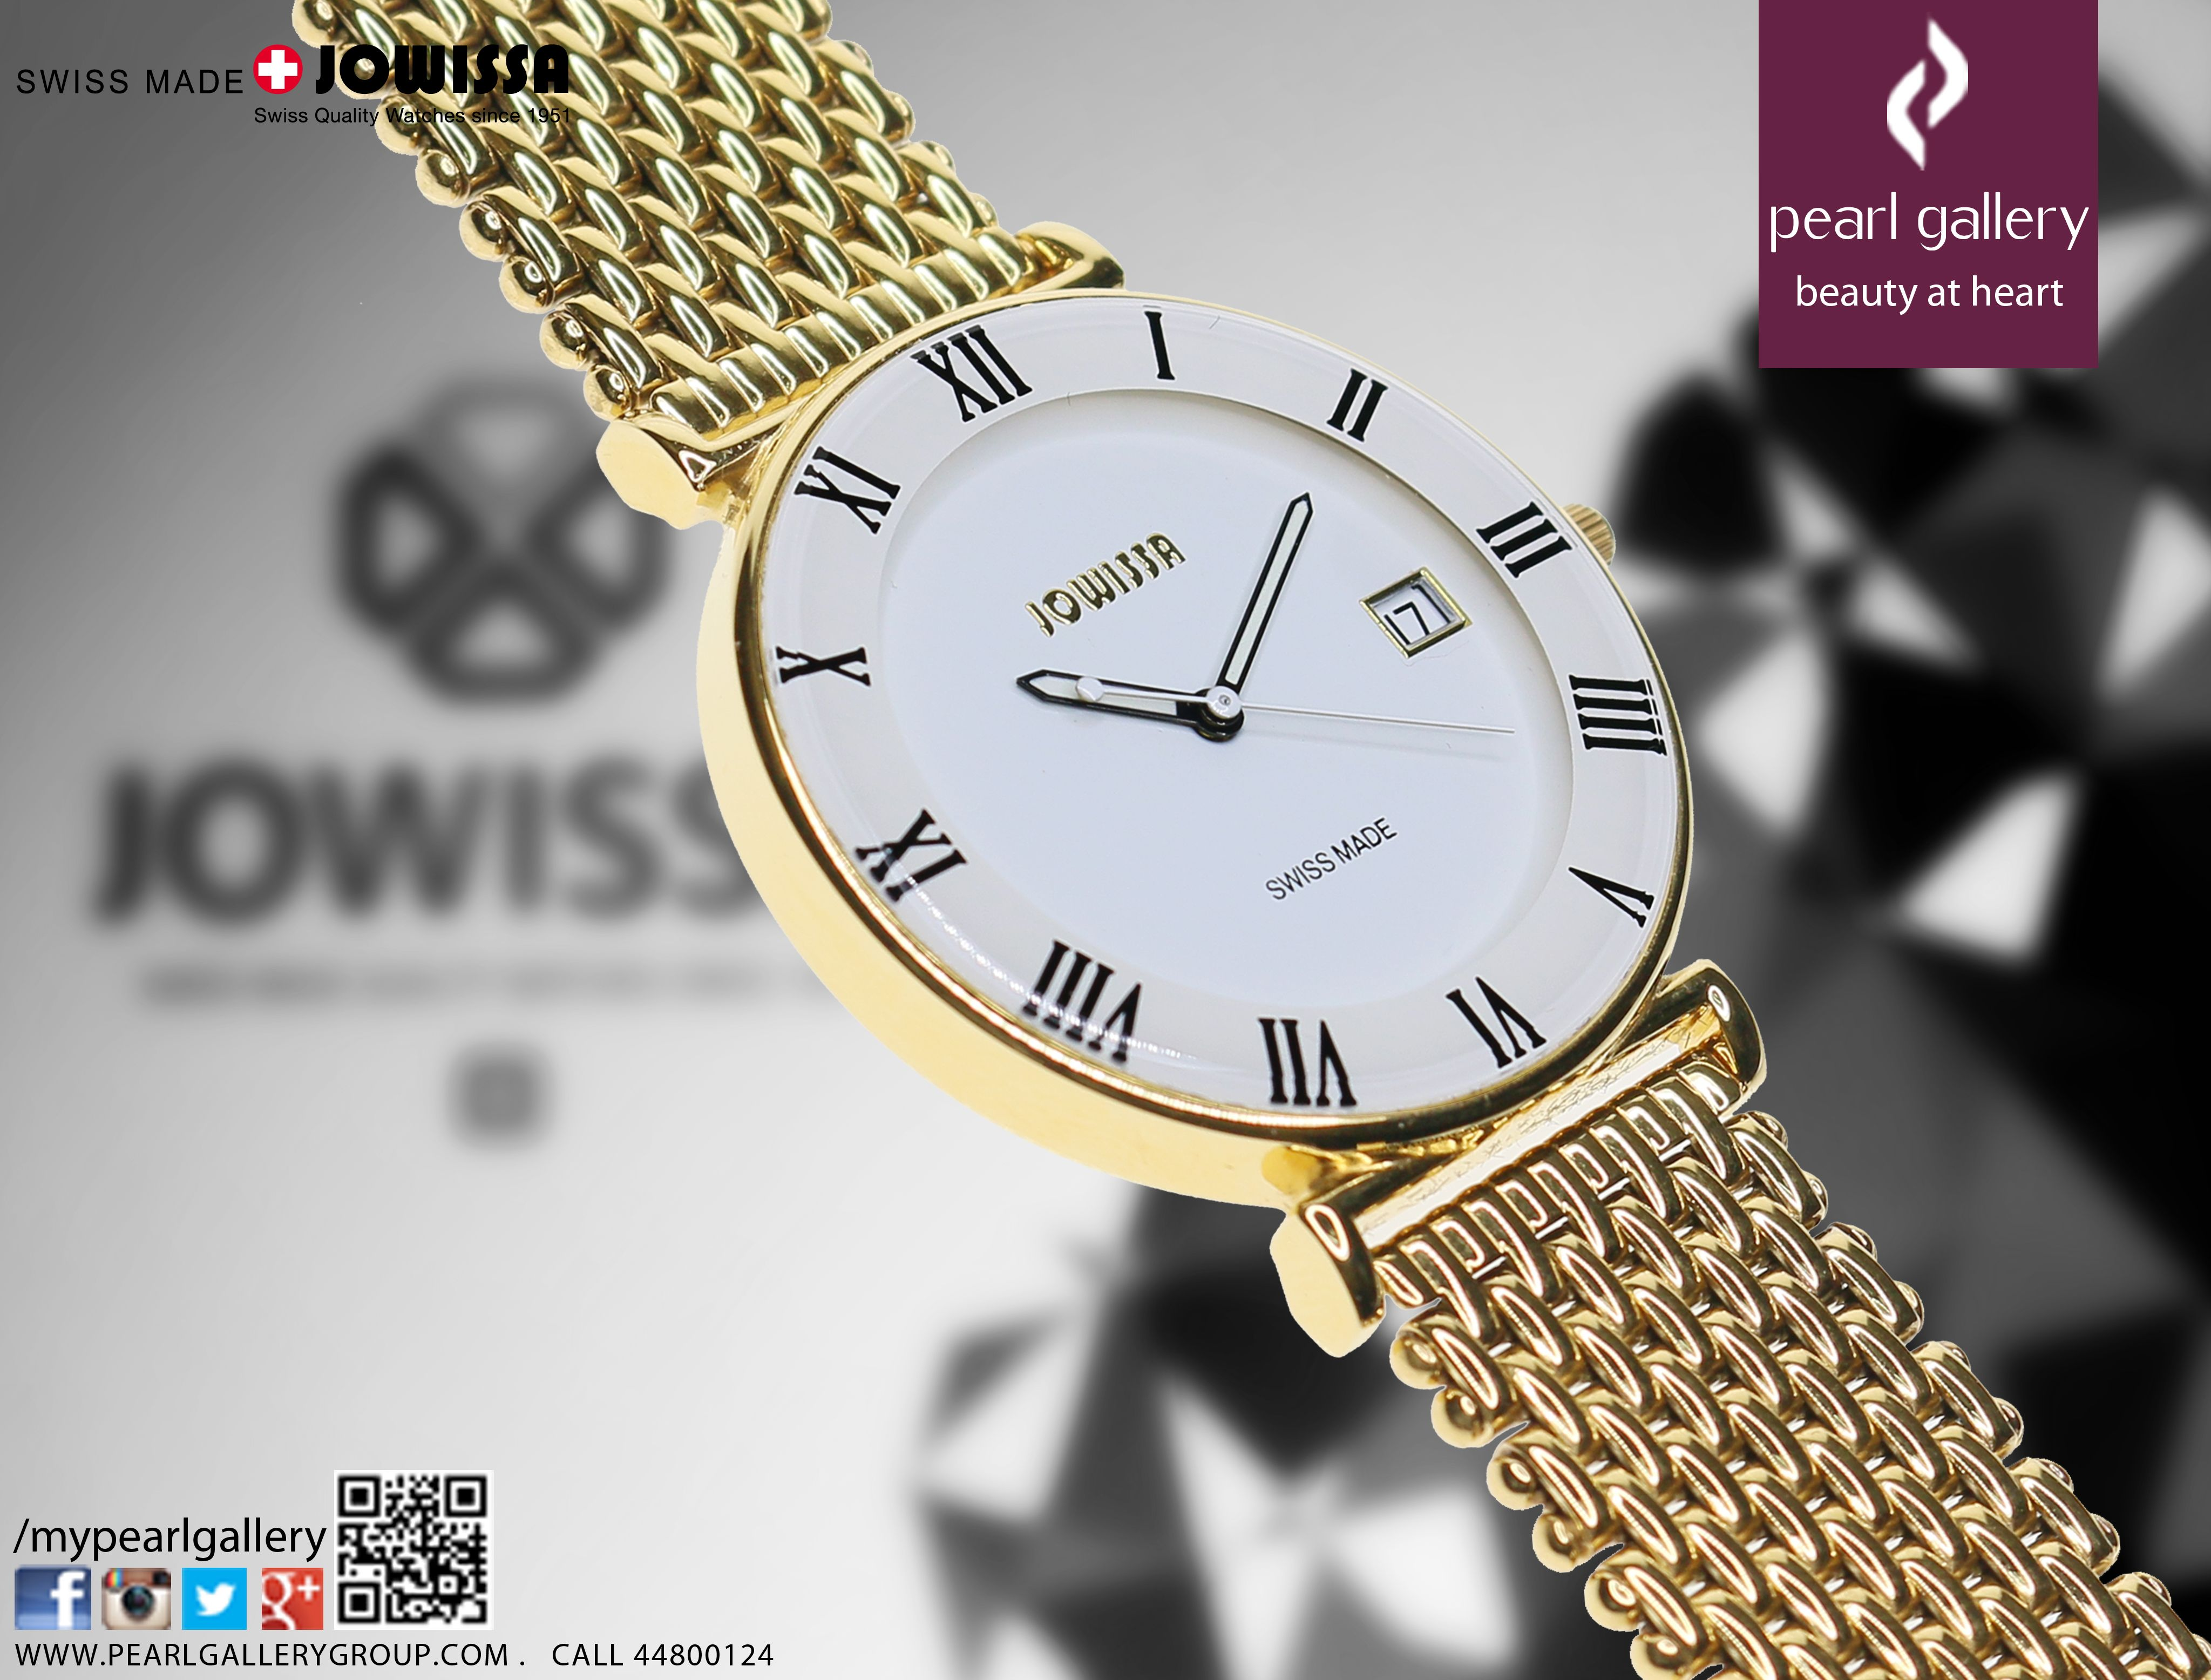 Discover Our Selection Of Jowissa Watches Find Swiss Watches For Men And Women On Jowissa Watch Collection Bracelet Watch